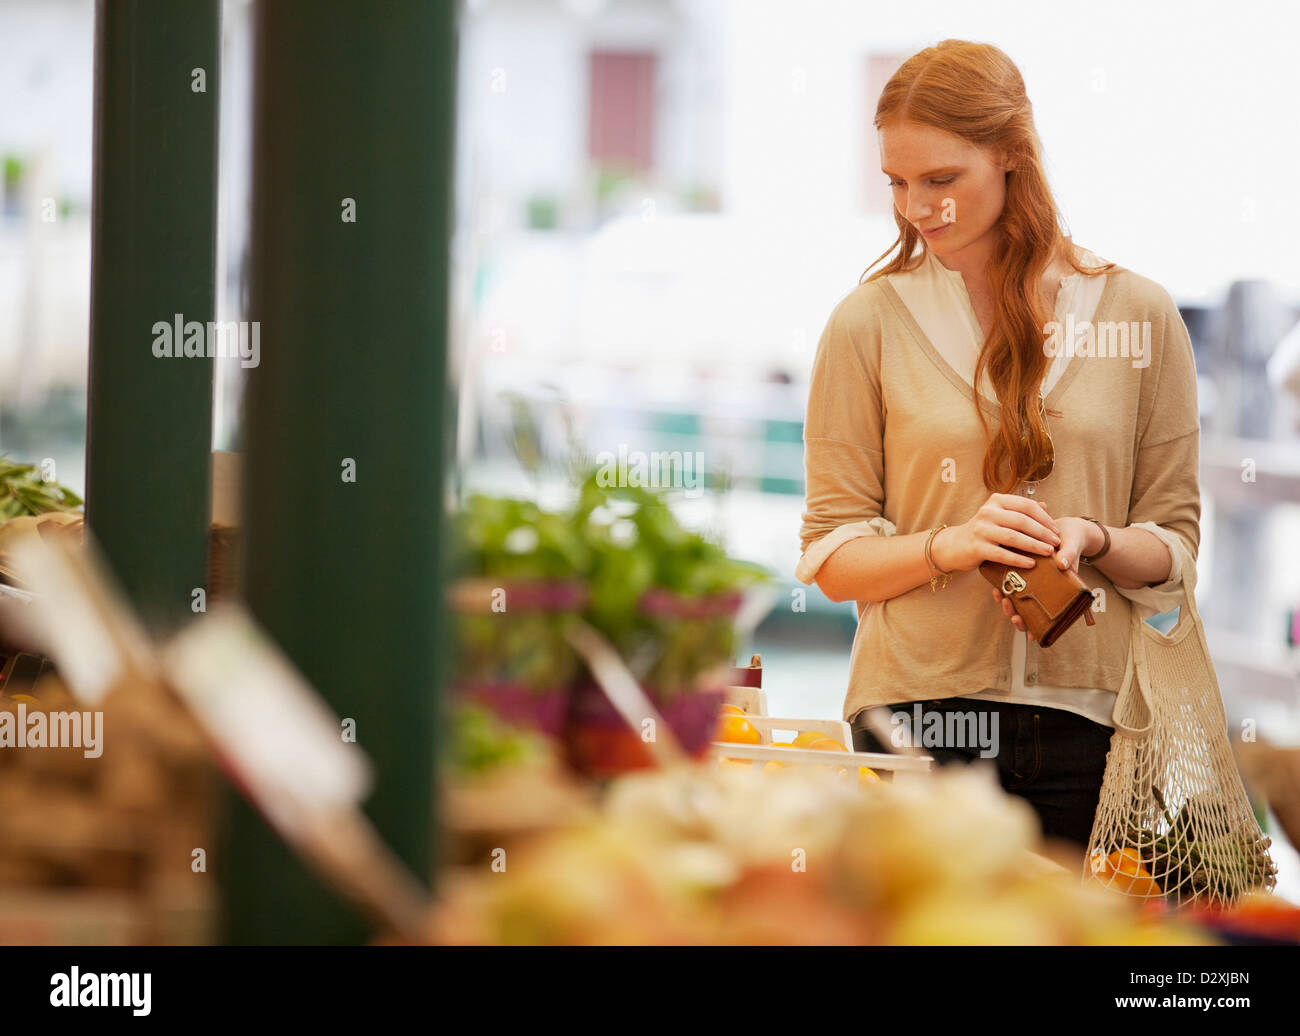 Woman shopping in outdoor market - Stock Image